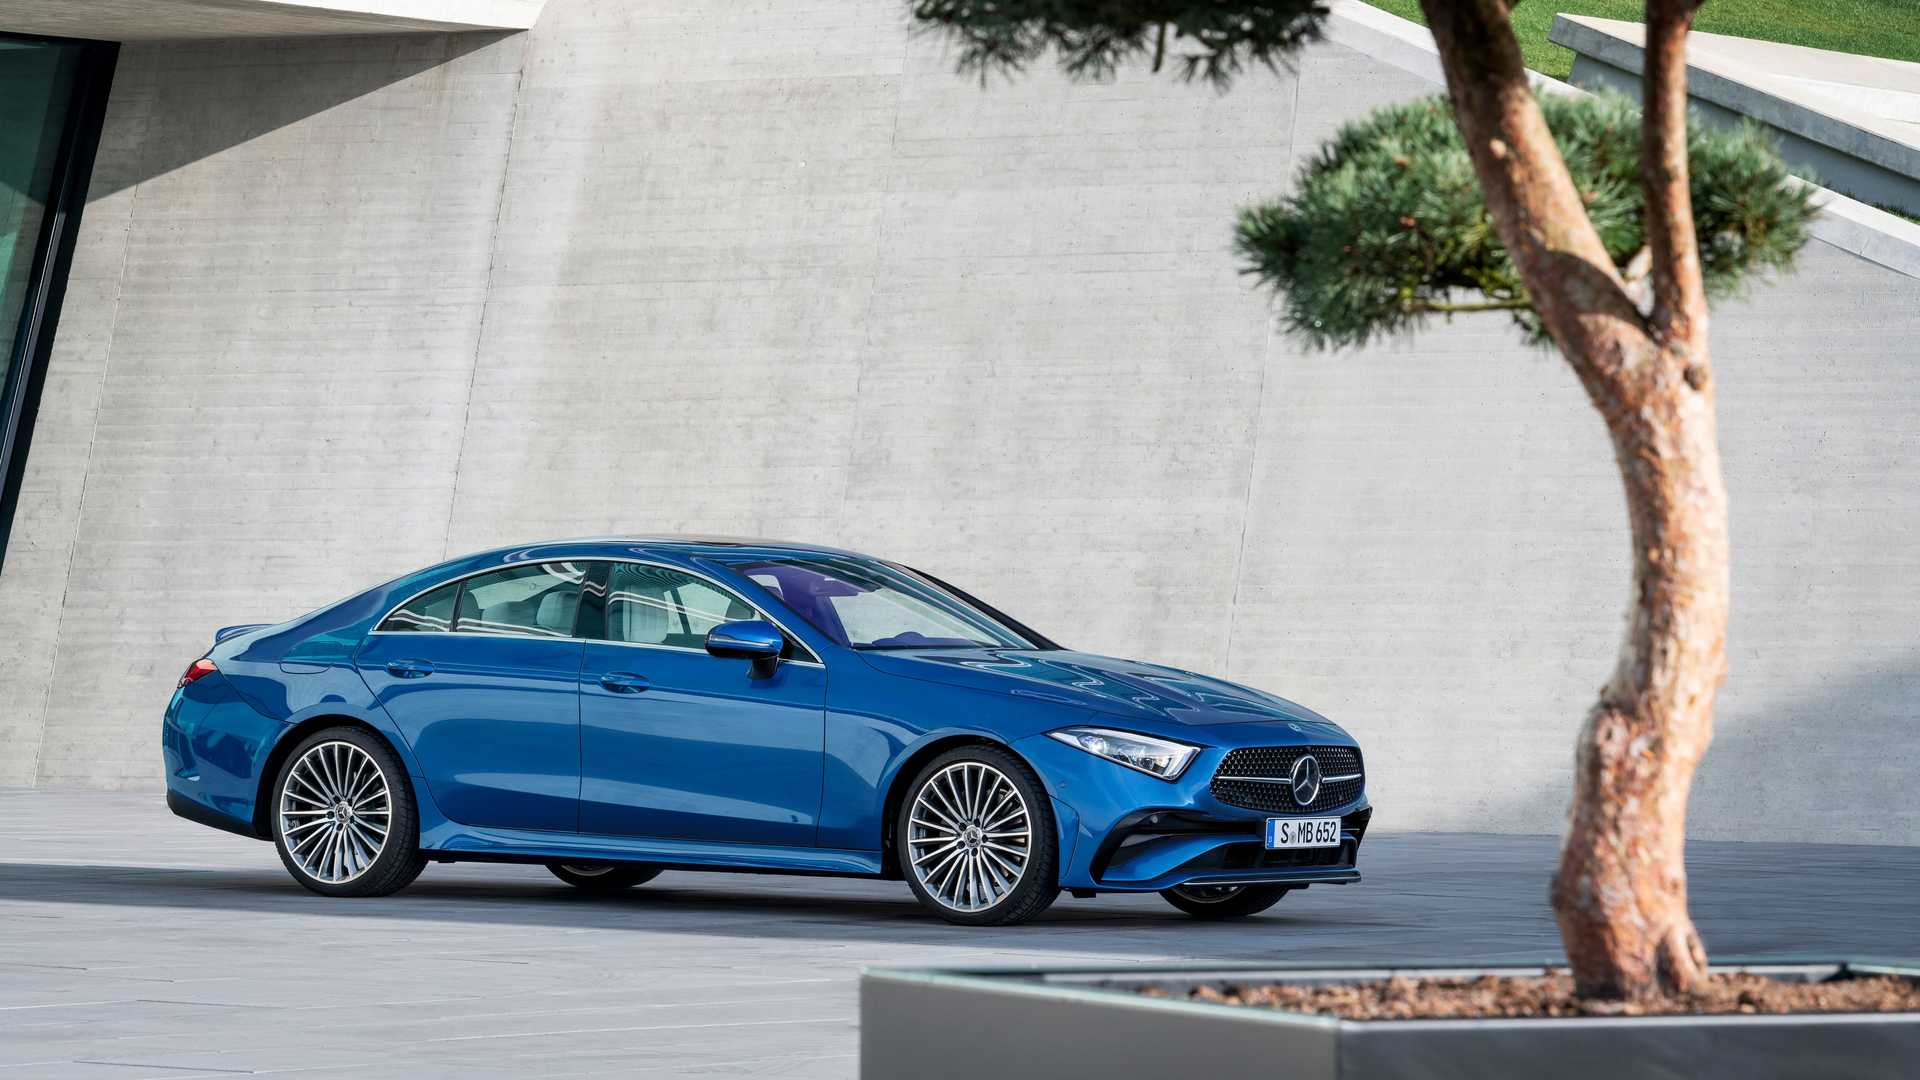 2022-mercedes-benz-cls-450-4matic-front-with-tree.jpg